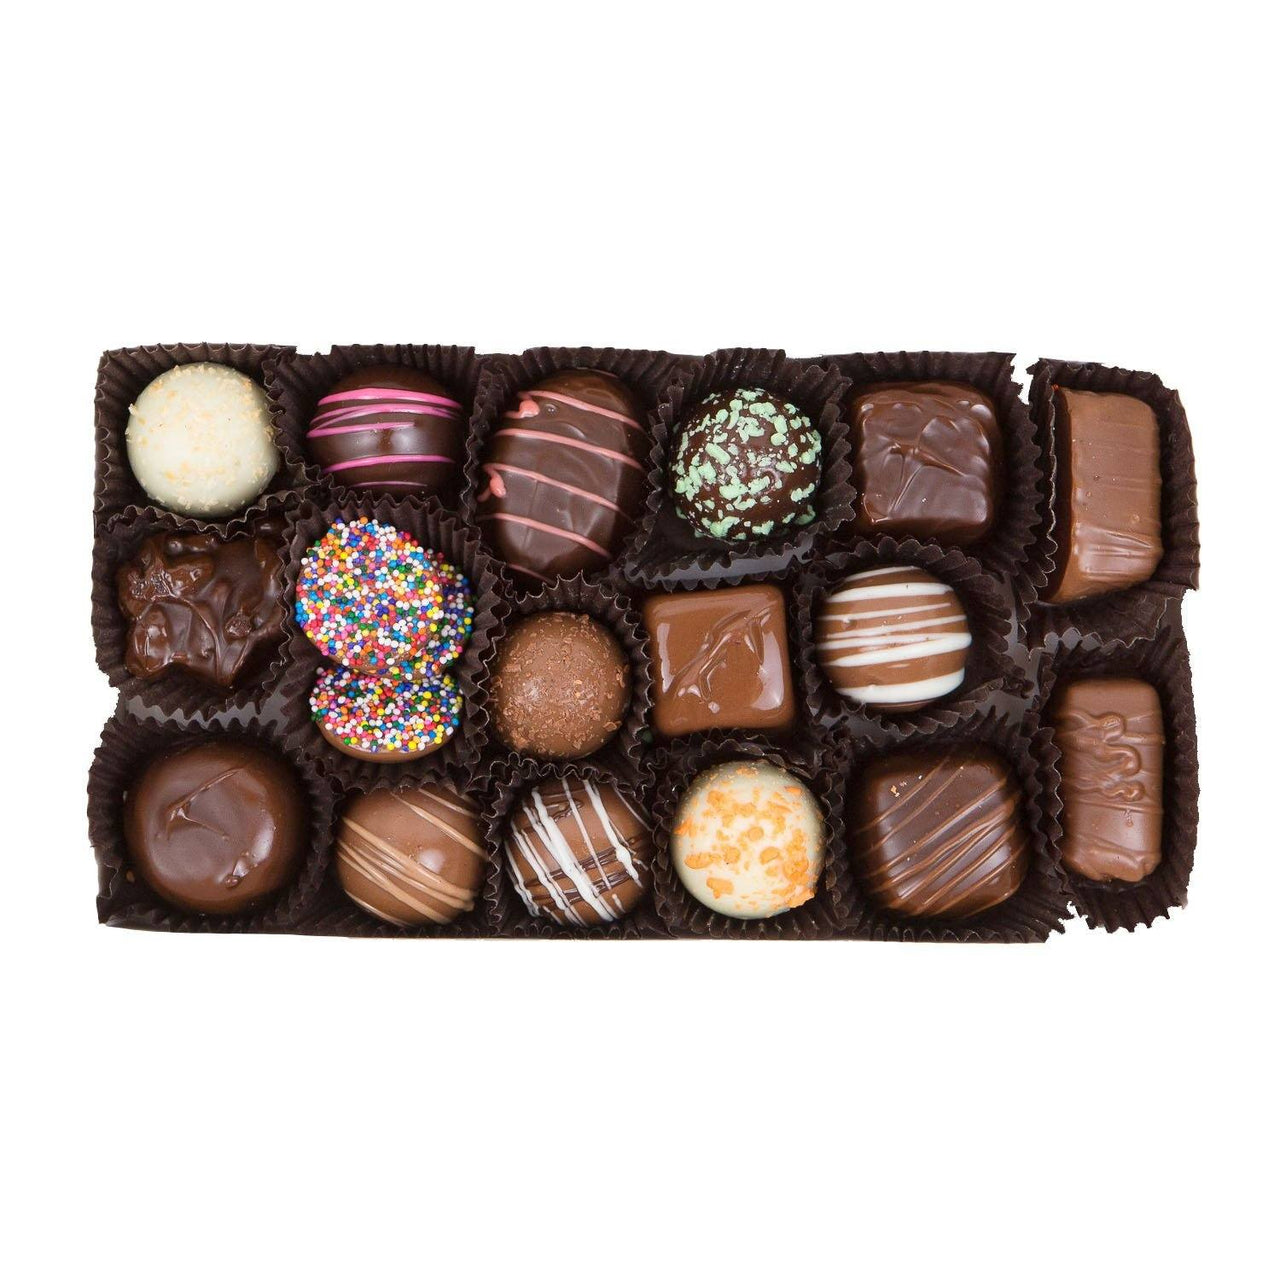 Xmas Gifts for Mom  - Chocolate Assortment Gift Box - Jackie's Chocolate (4336370516083)